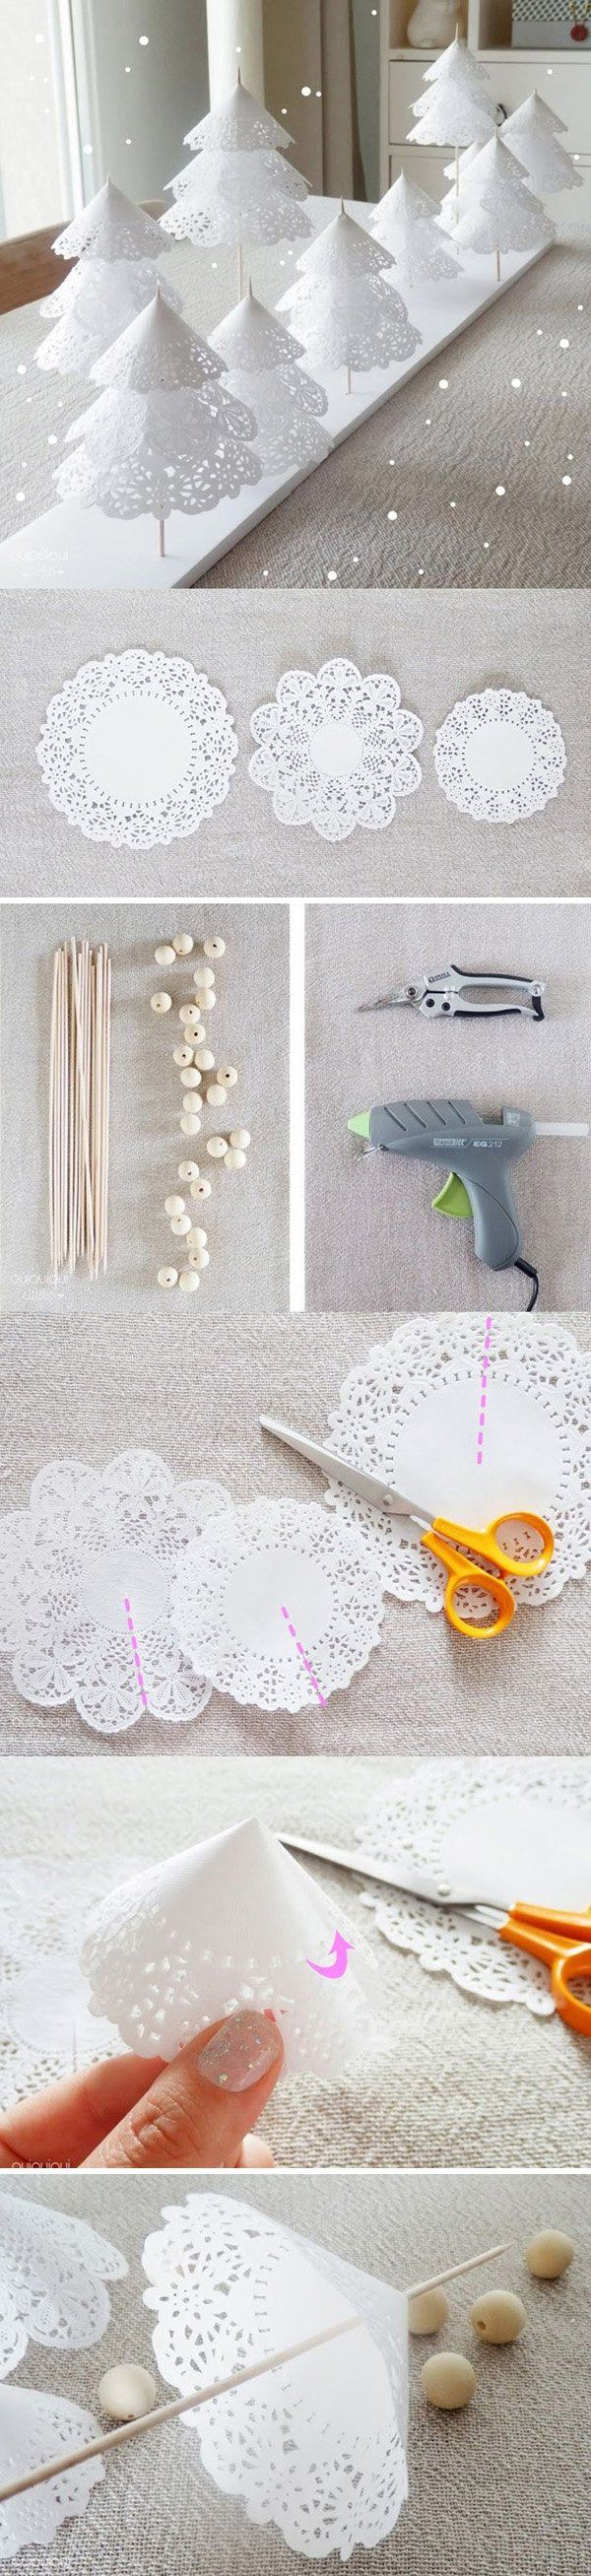 50 Christmas DIY Ideas - Love these ideas! Find supplies for your favorite holiday DIY's at Afloral.com